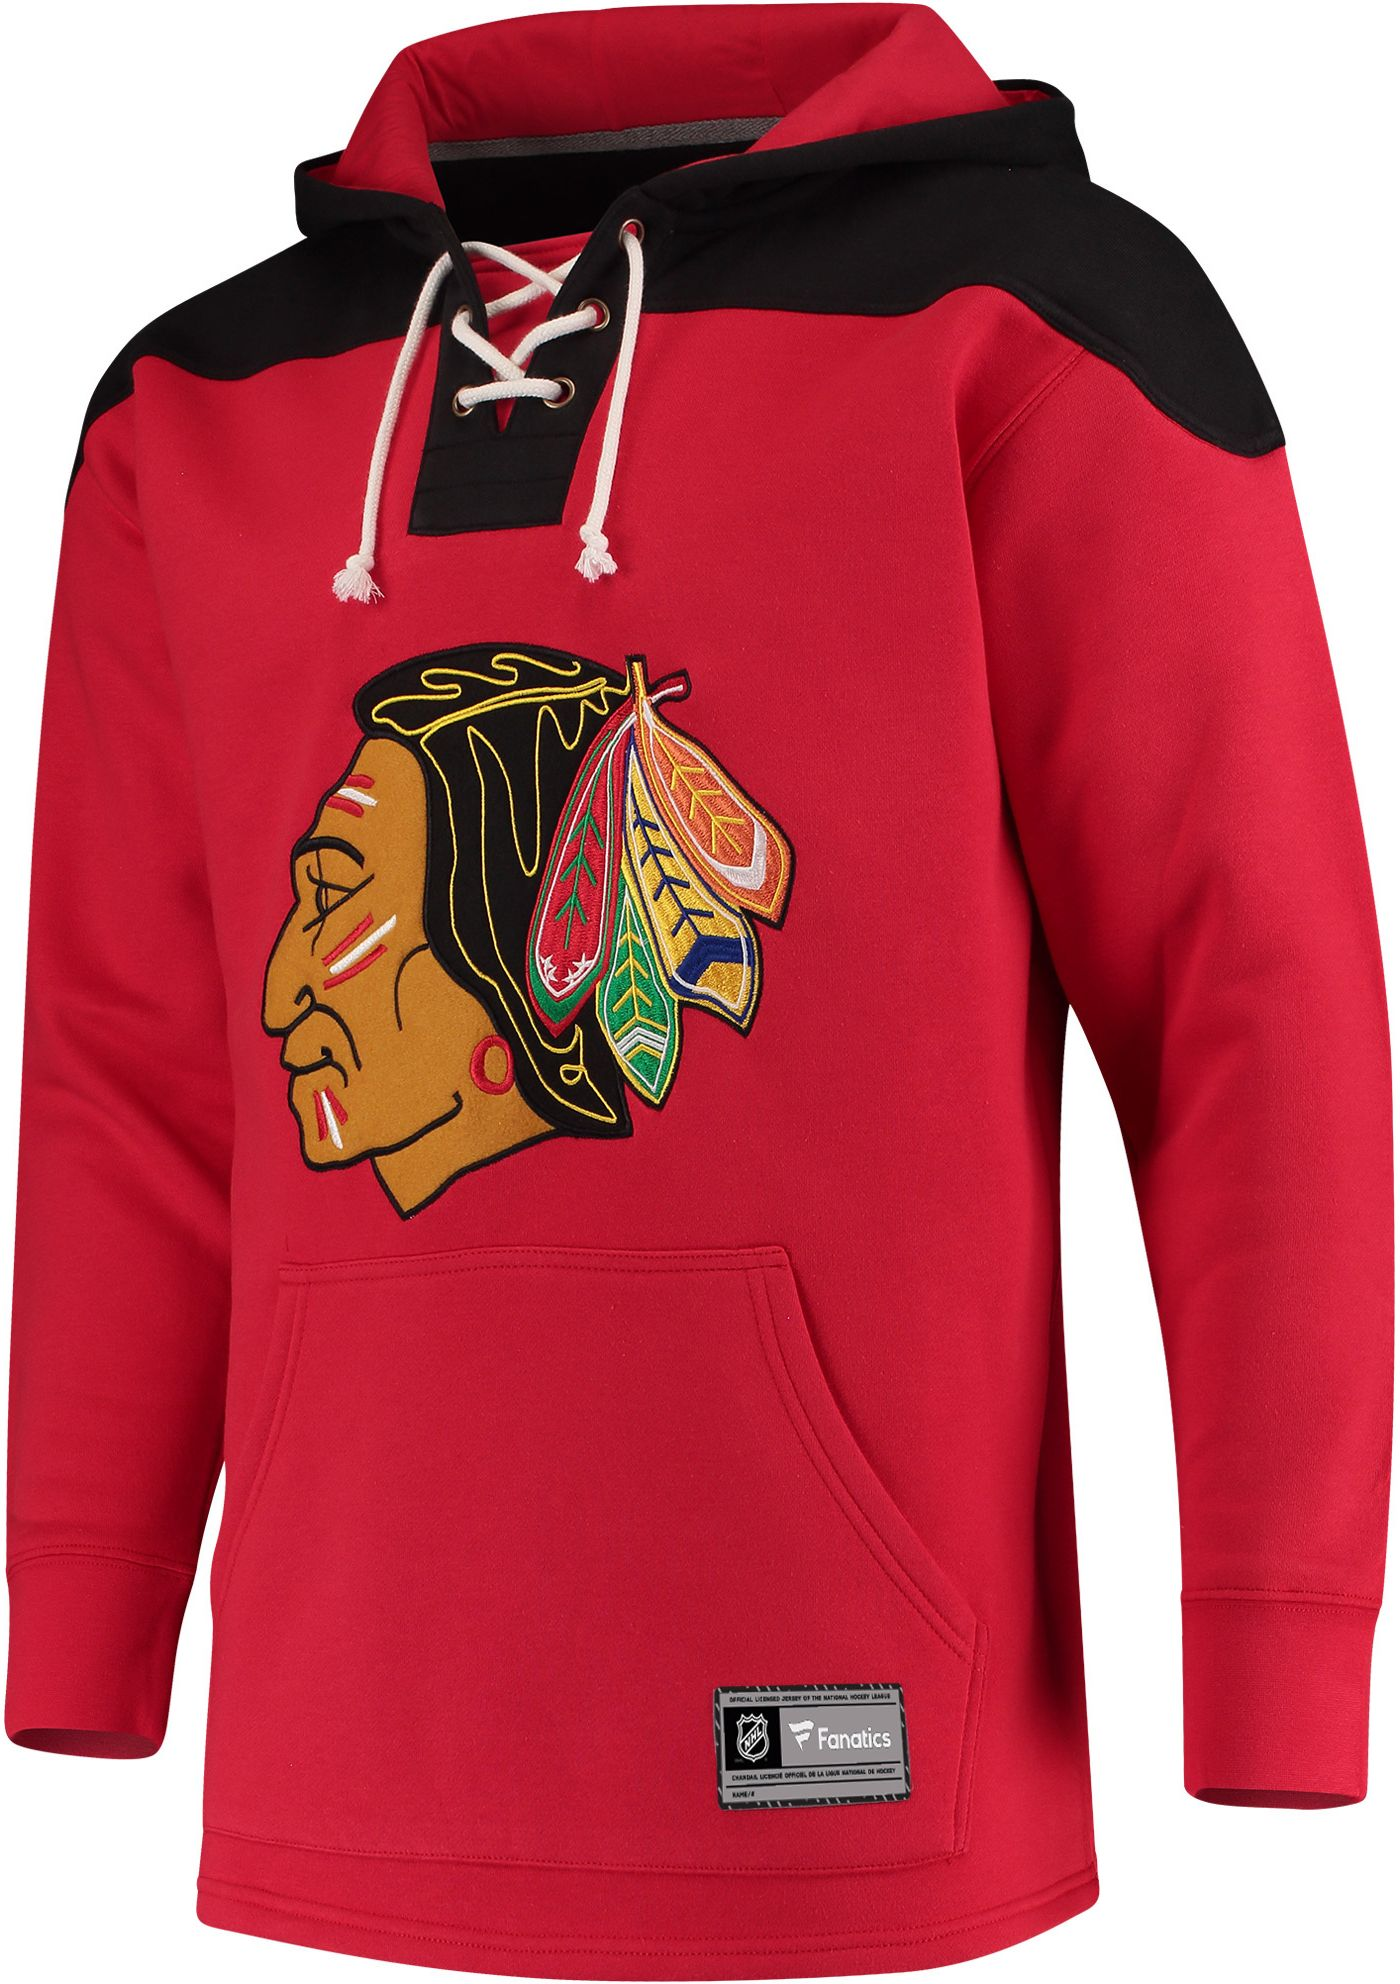 NHL Men's Chicago Blackhawks Lace Up Red Pullover Hoodie